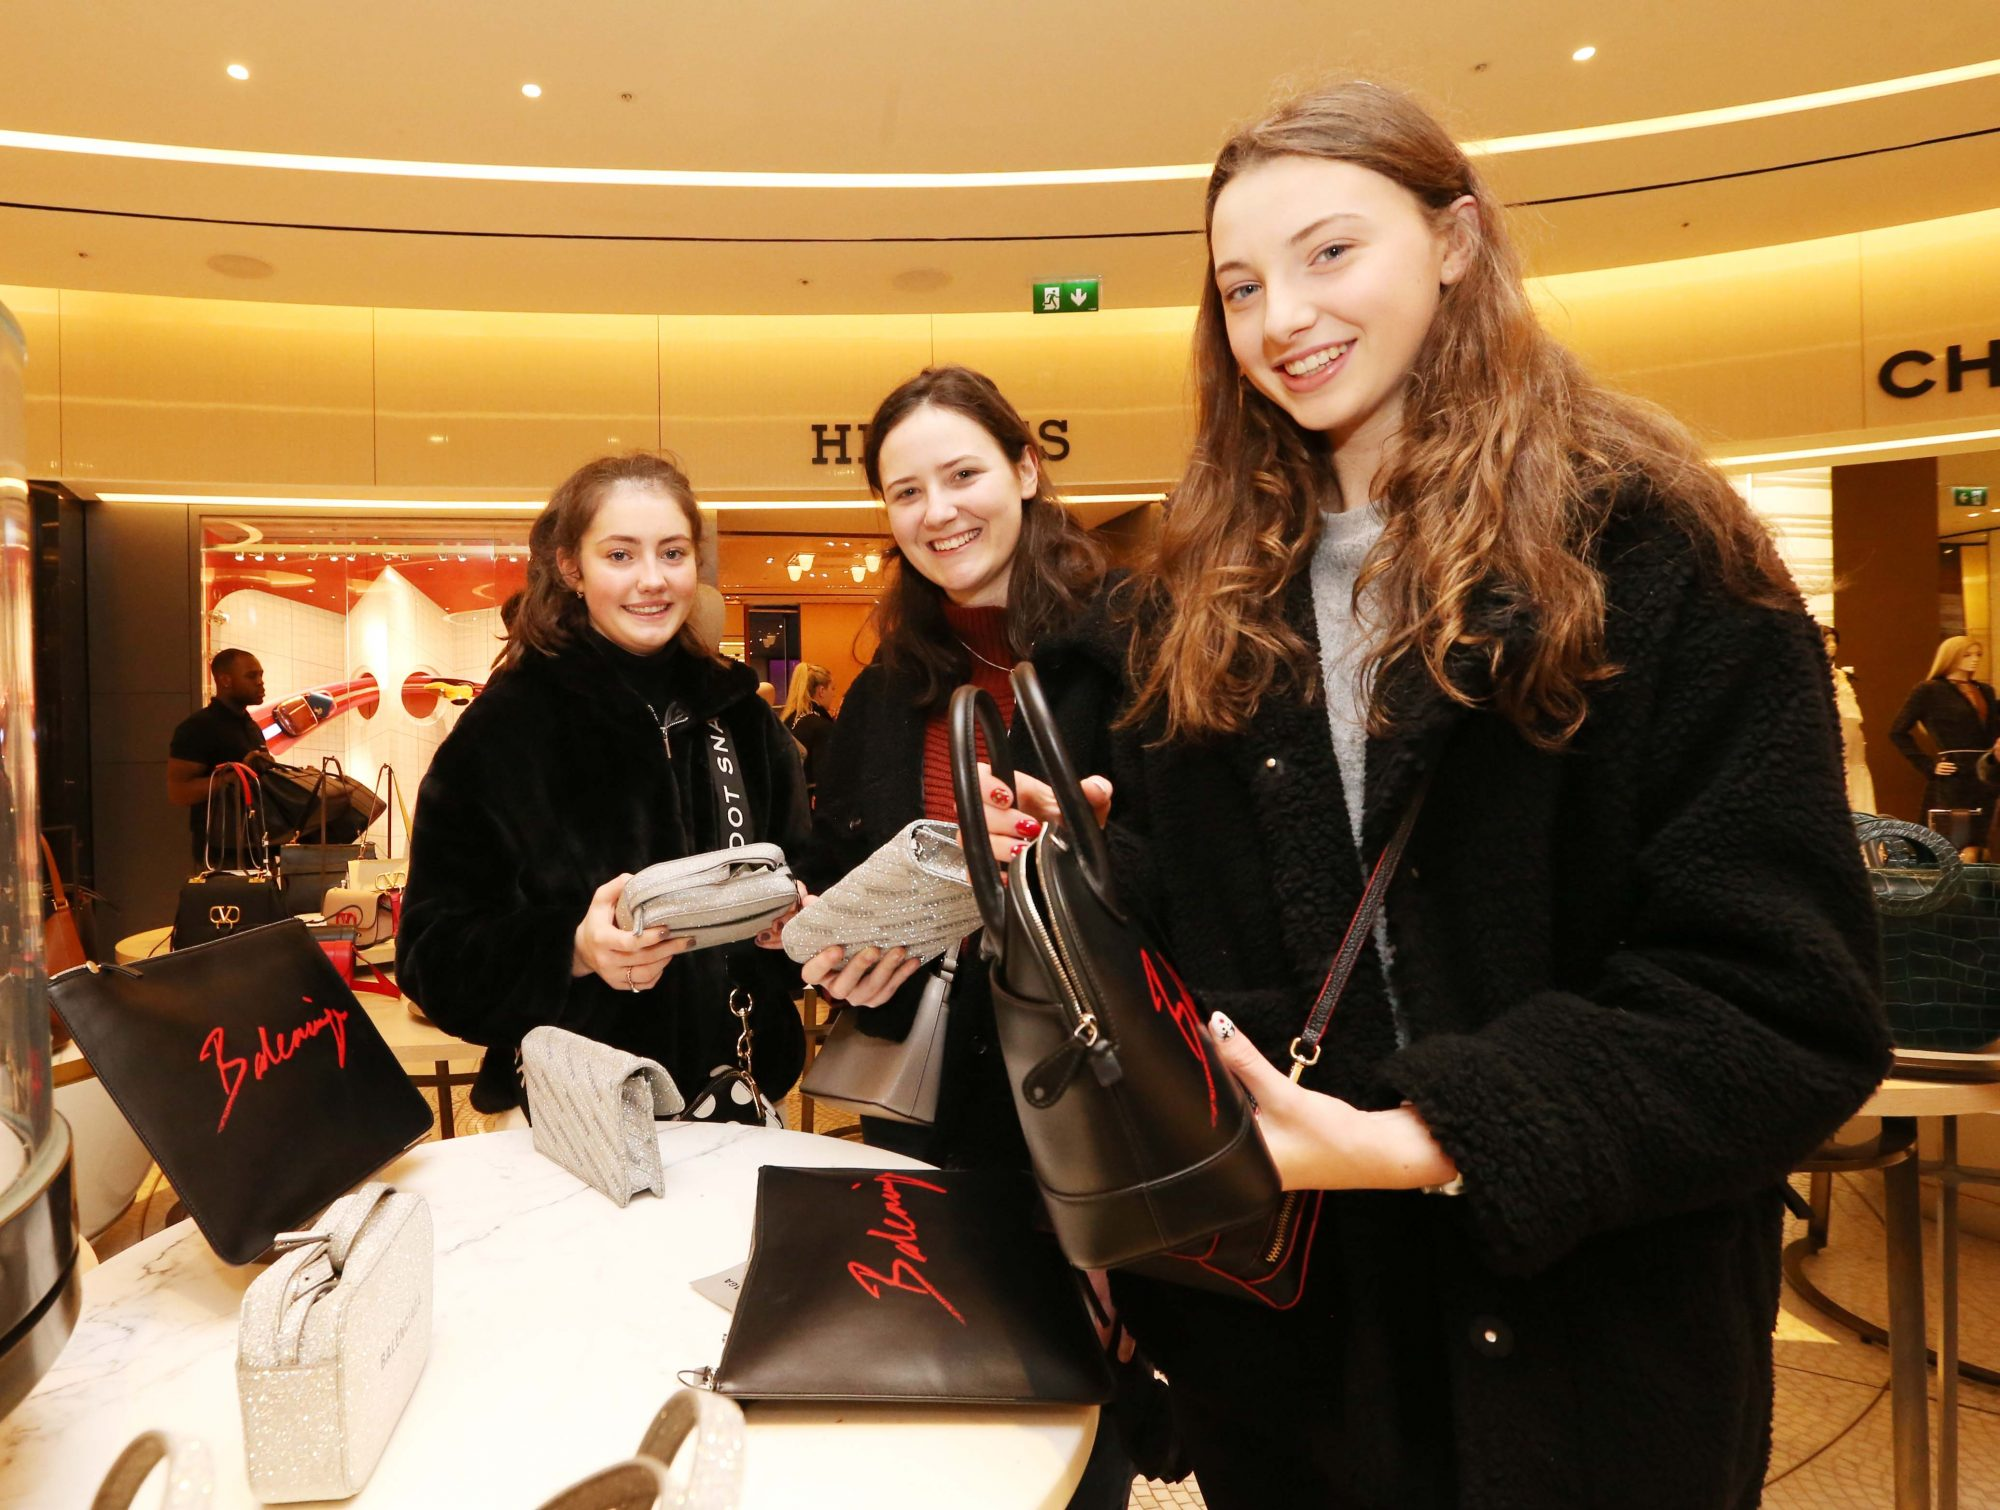 26/12/2019  Brown Thomas Sale. Pictured are (LtoR) Lily Walsh, Ciara Browne and Megan Ross from Dublin today (26th December 2019) at the highly anticipated Brown Thomas Sale.  Photo: Sasko Lazarov/Photocall Ireland